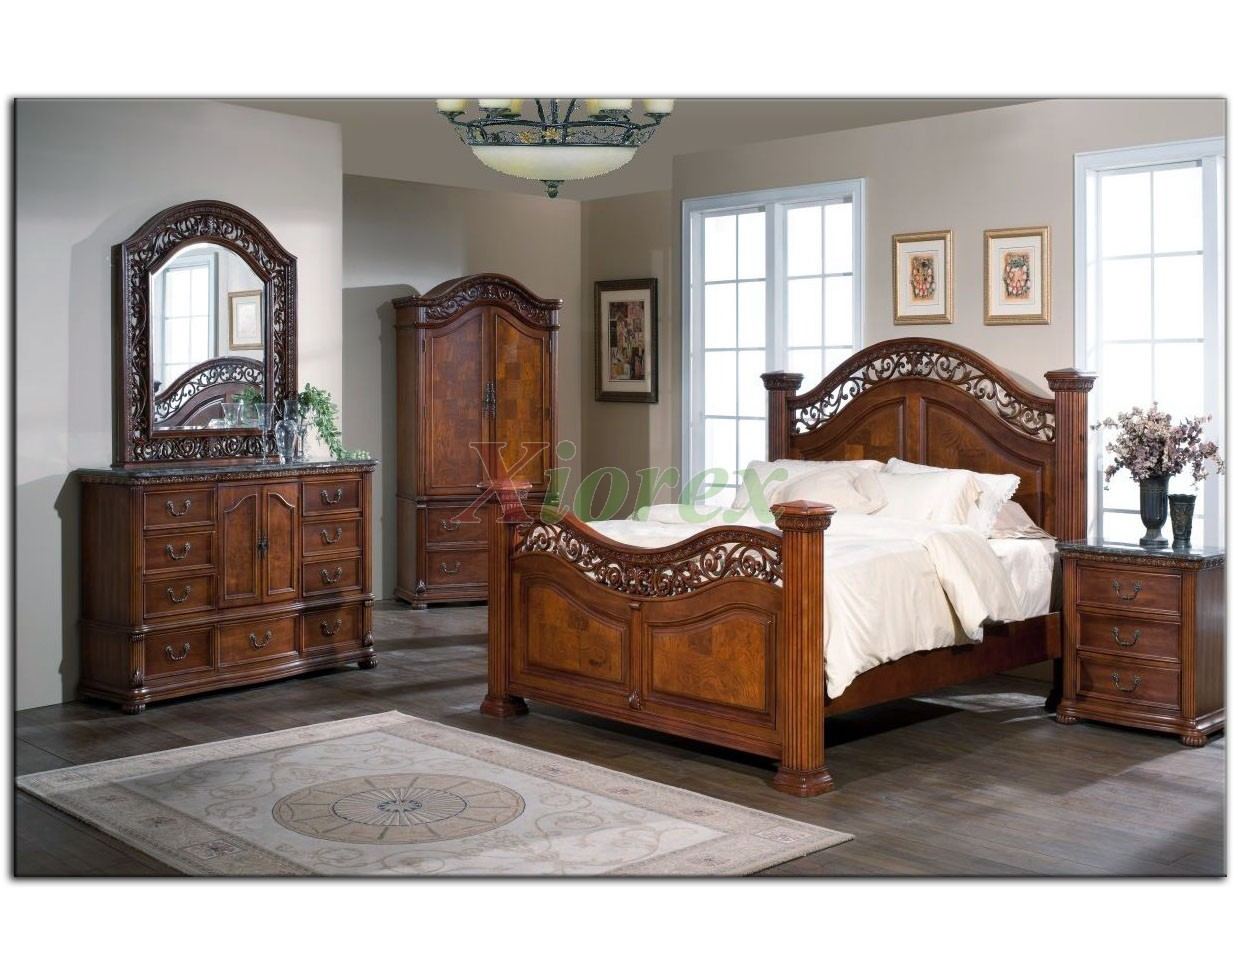 Poster bedroom furniture set 114 xiorex for I need bedroom furniture